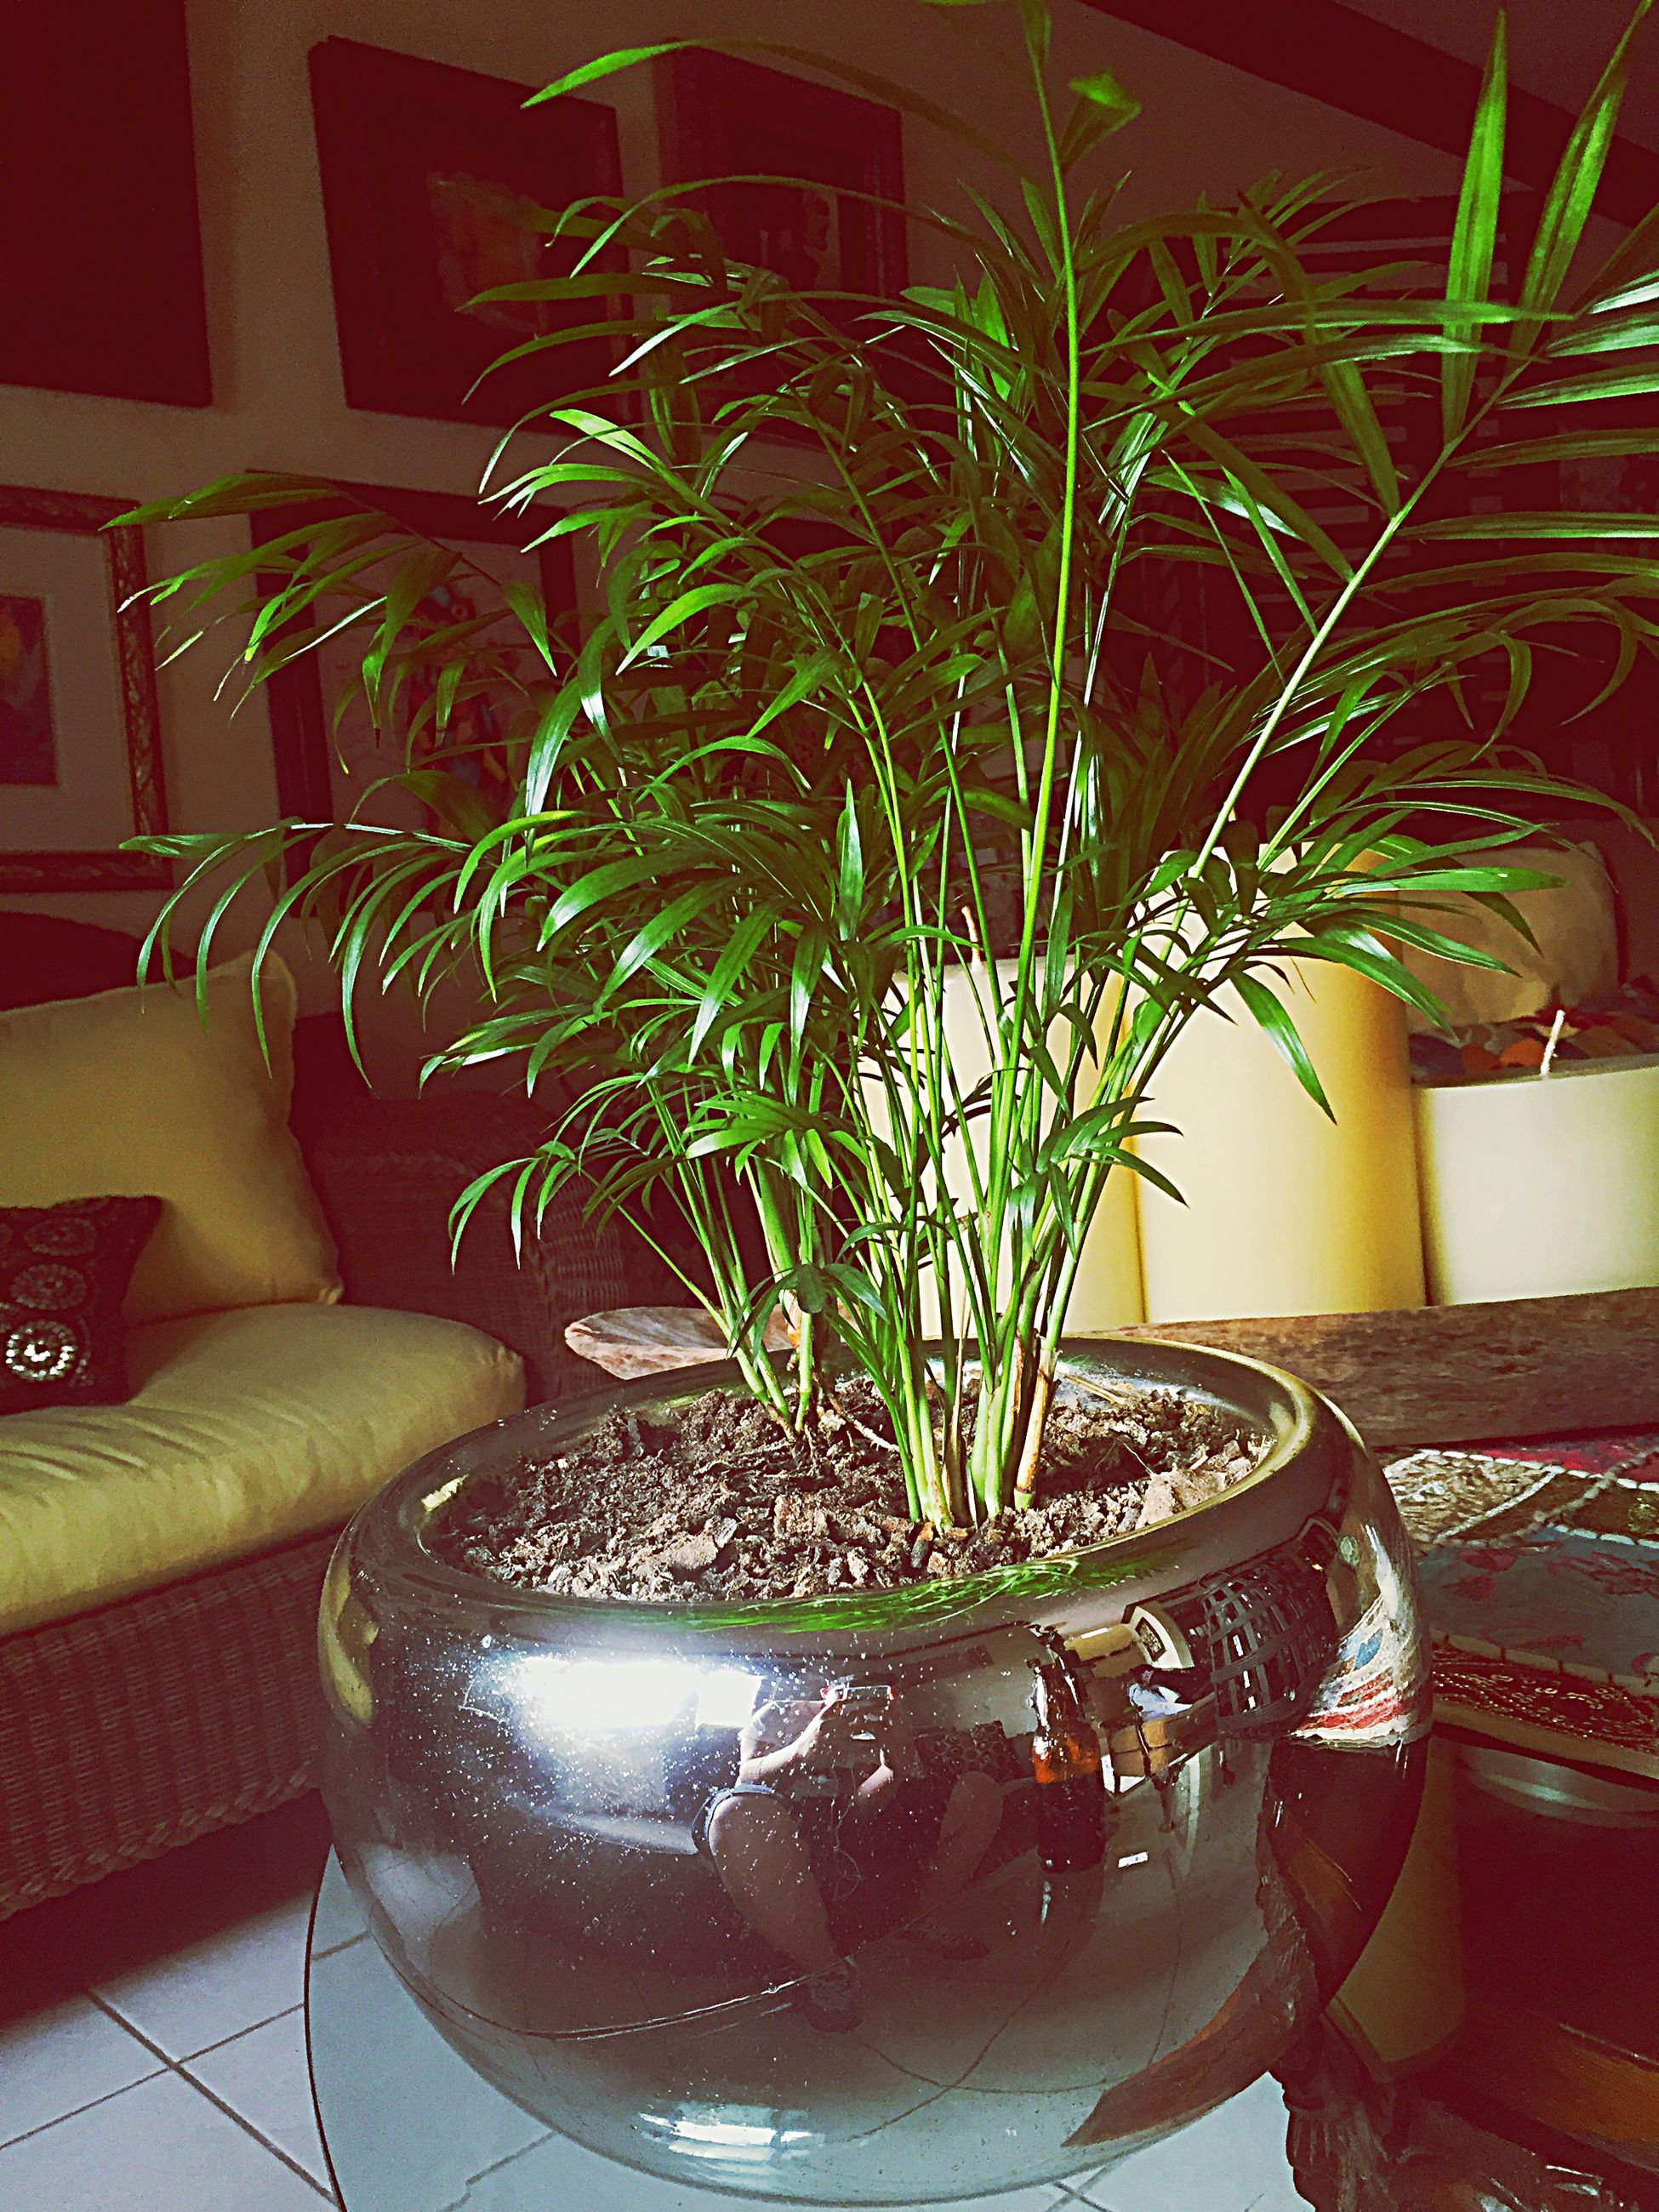 potted plant, indoors, table, vase, plant, home interior, flower pot, growth, window, chair, glass - material, house, houseplant, flower, decoration, no people, pot plant, absence, transparent, window sill